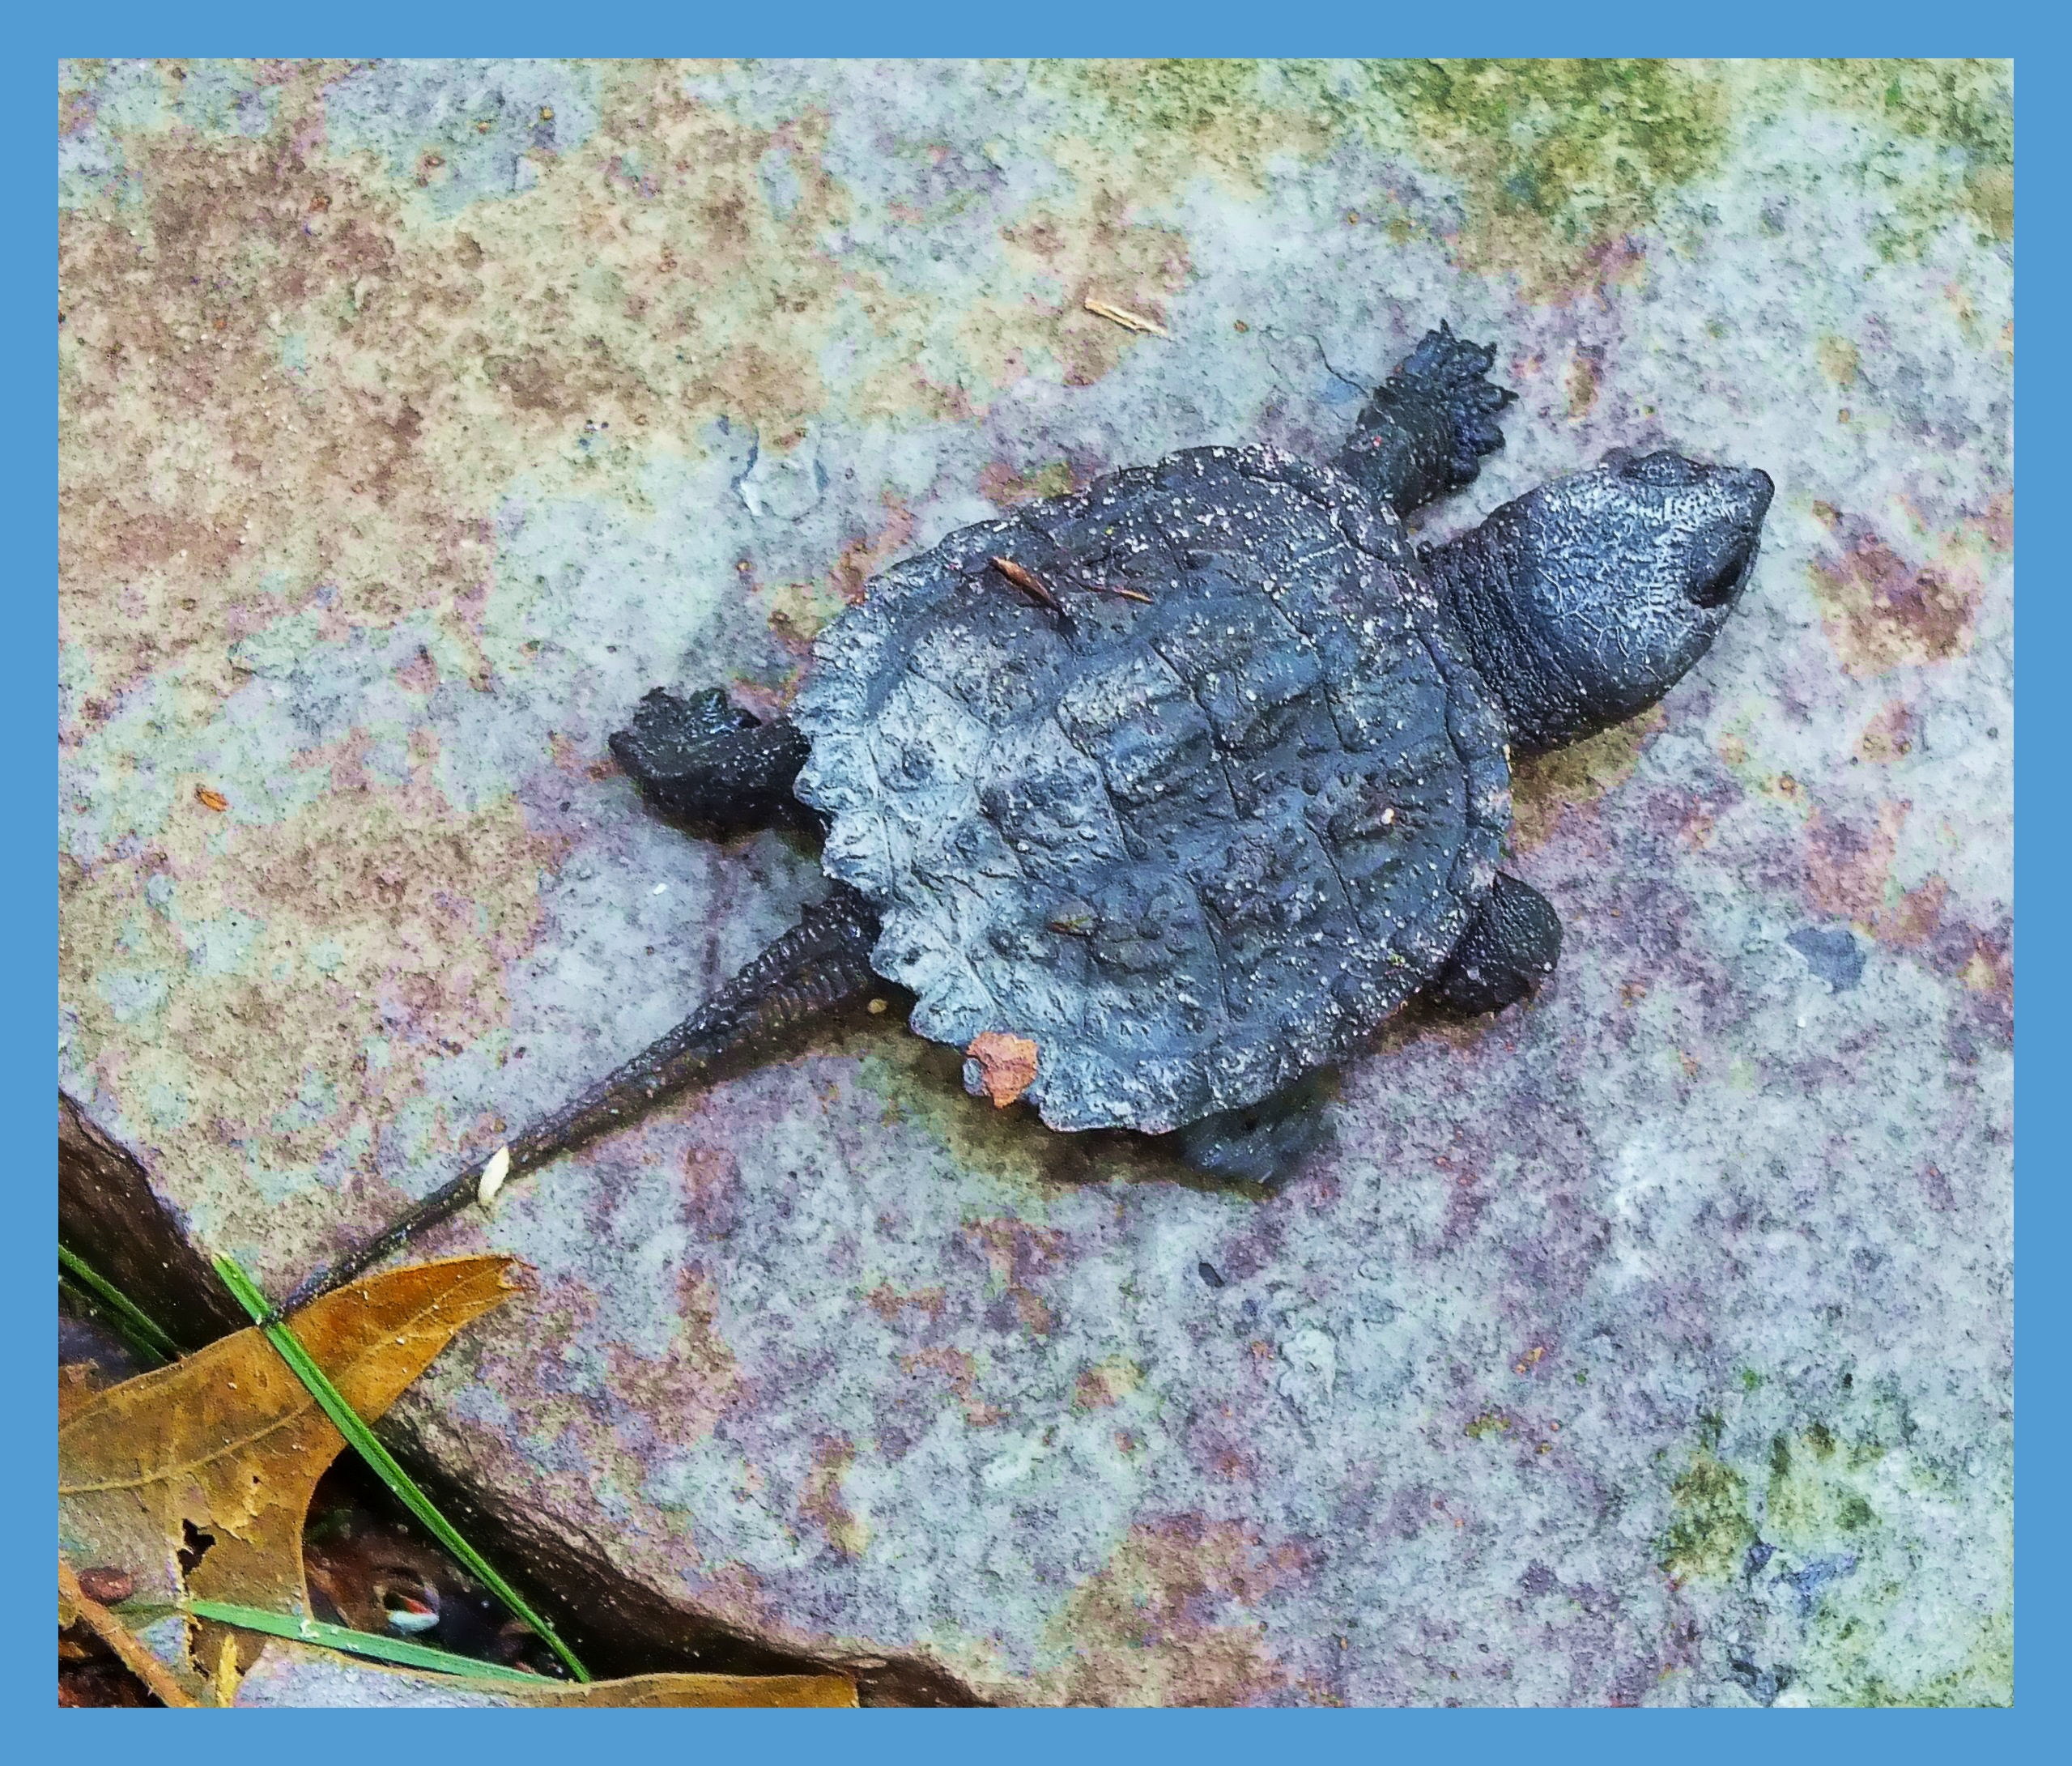 Baby Snapping Turtle (2). Photo by Thomas Peace c. 2015